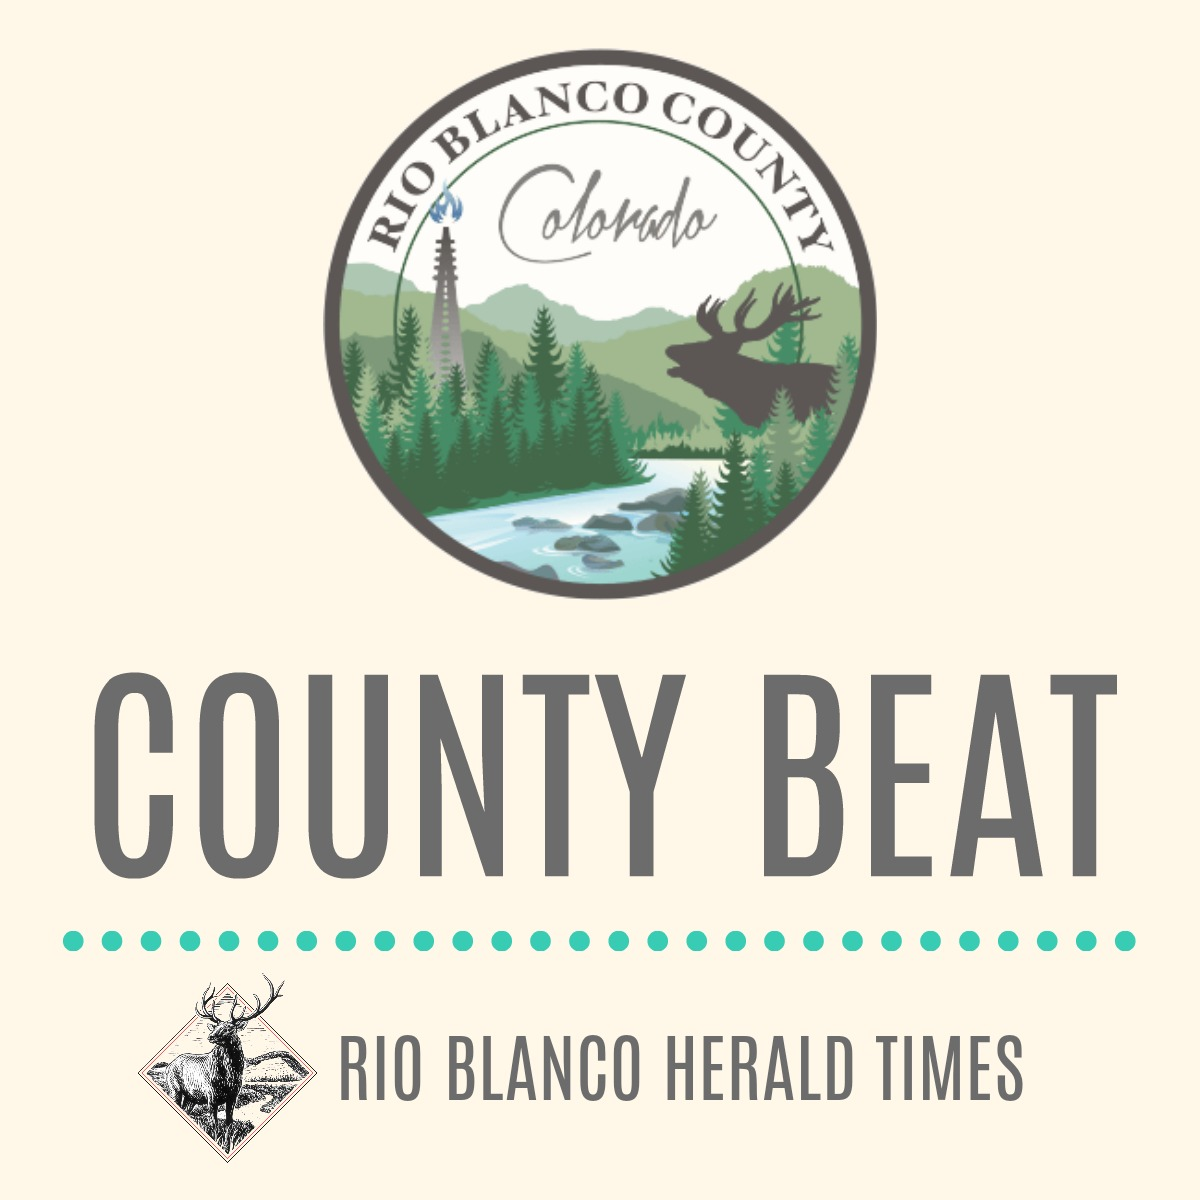 countybeat